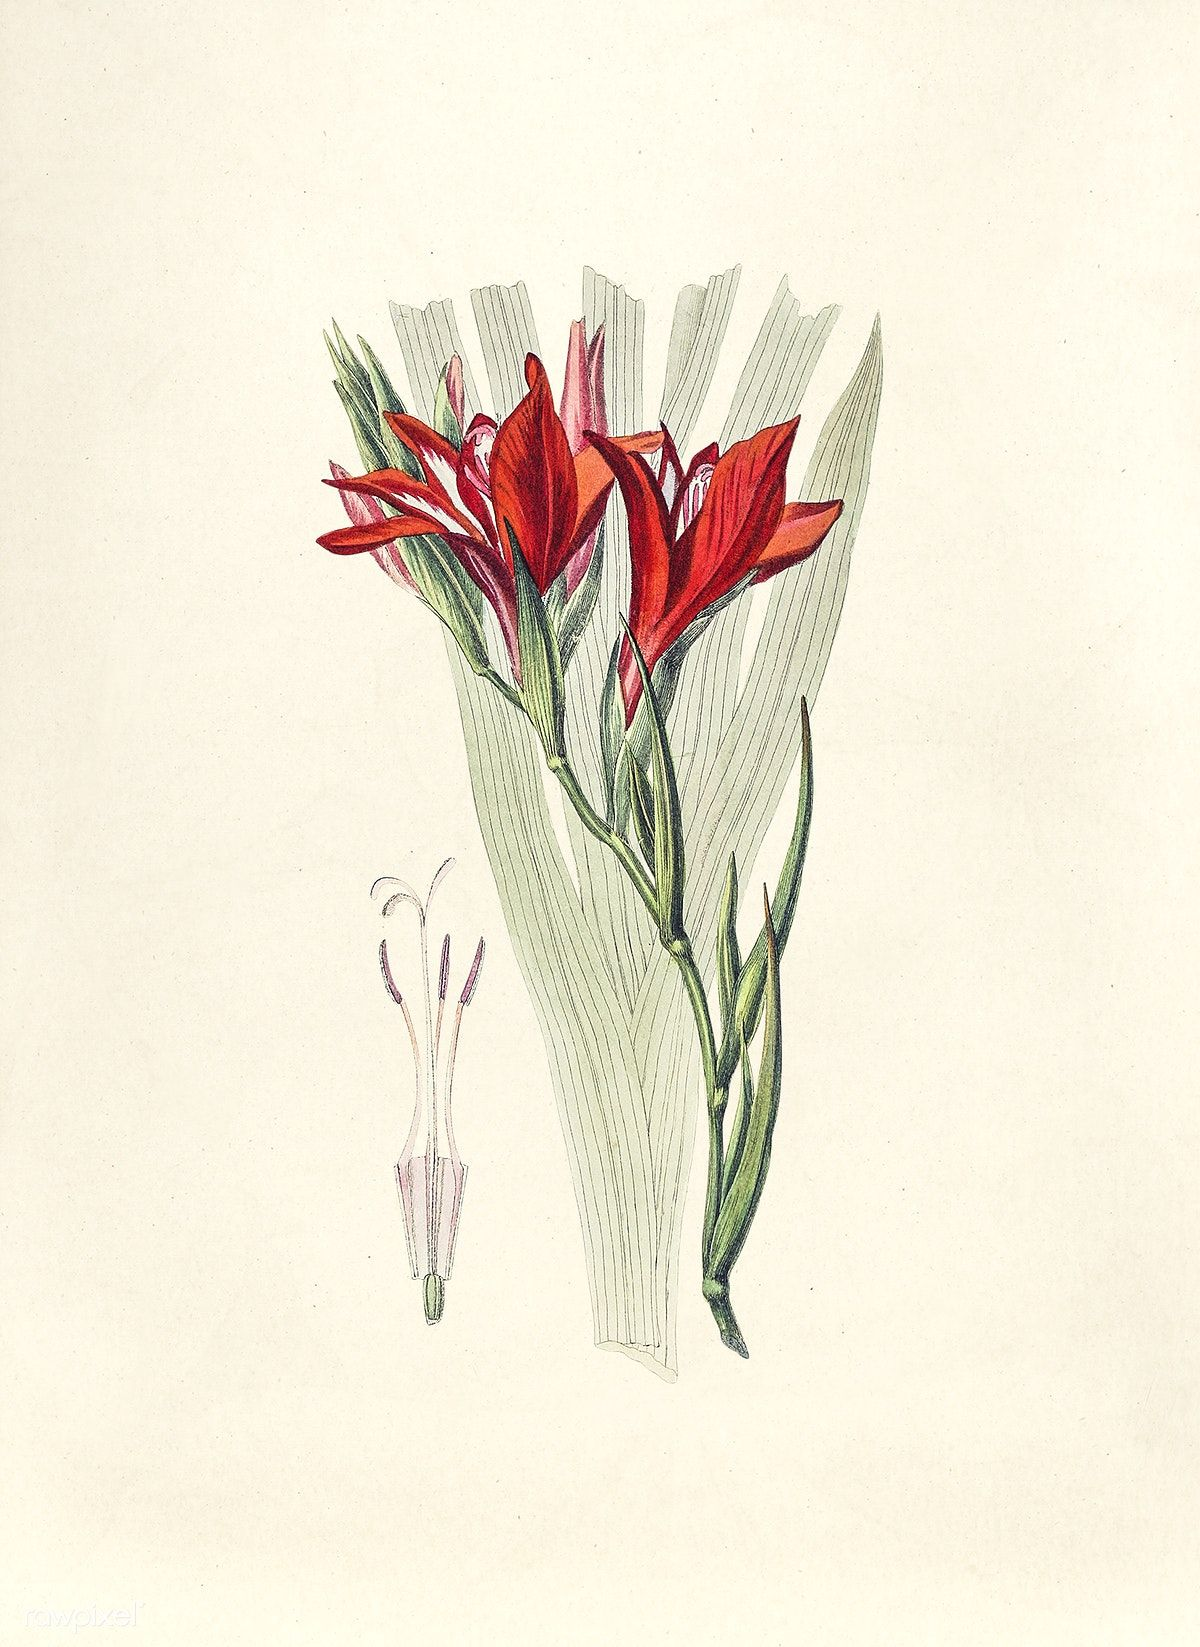 Antique Illustration Of Gladiolus Free Image By Rawpixel Com Antique Illustration Free Illustrations Illustration